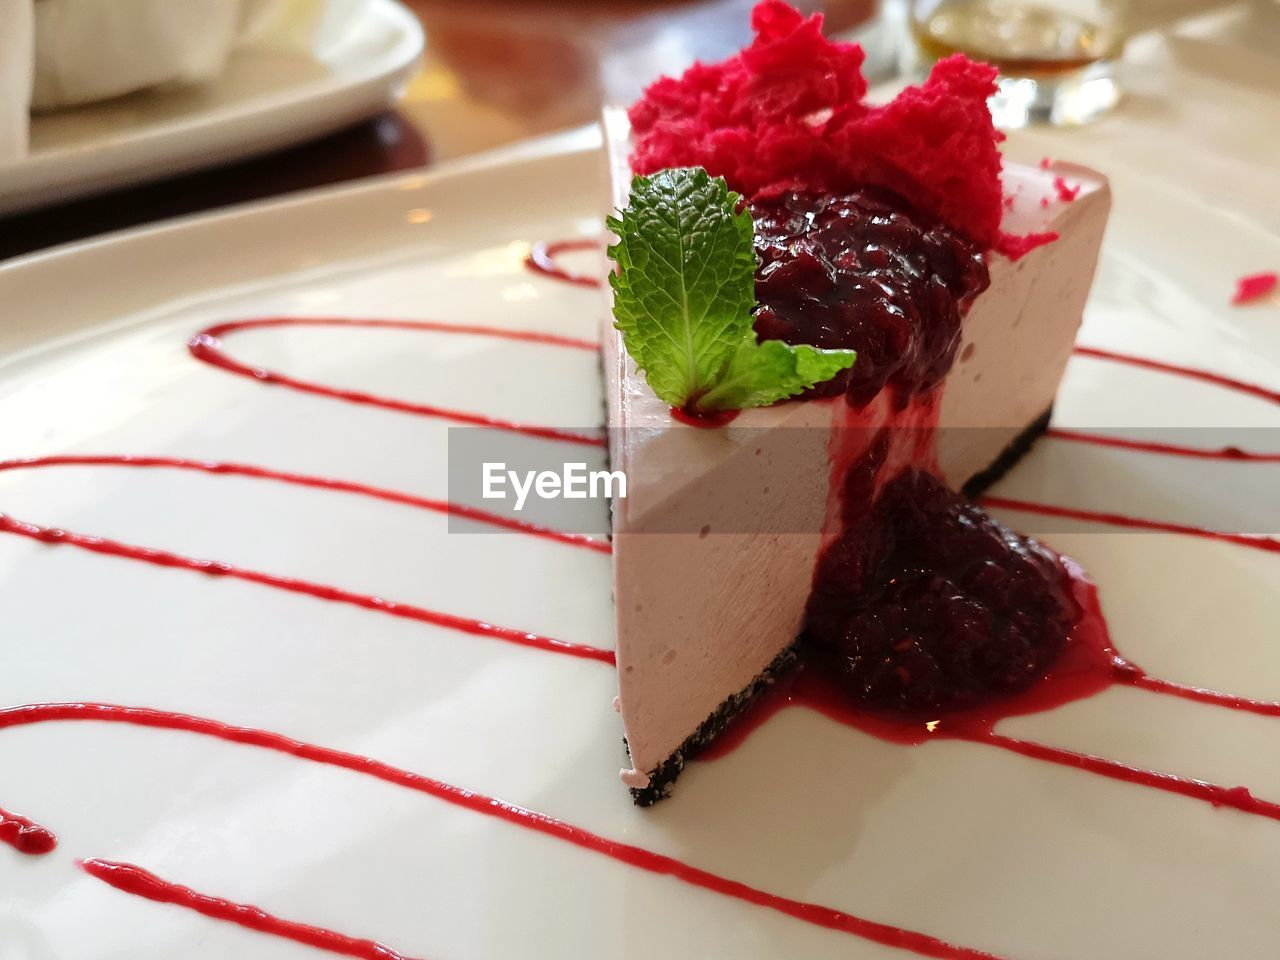 food and drink, food, sweet, sweet food, dessert, indulgence, ready-to-eat, plate, freshness, temptation, still life, close-up, berry fruit, indoors, red, no people, serving size, unhealthy eating, strawberry, baked, garnish, mint leaf - culinary, cheesecake, snack, chocolate cake